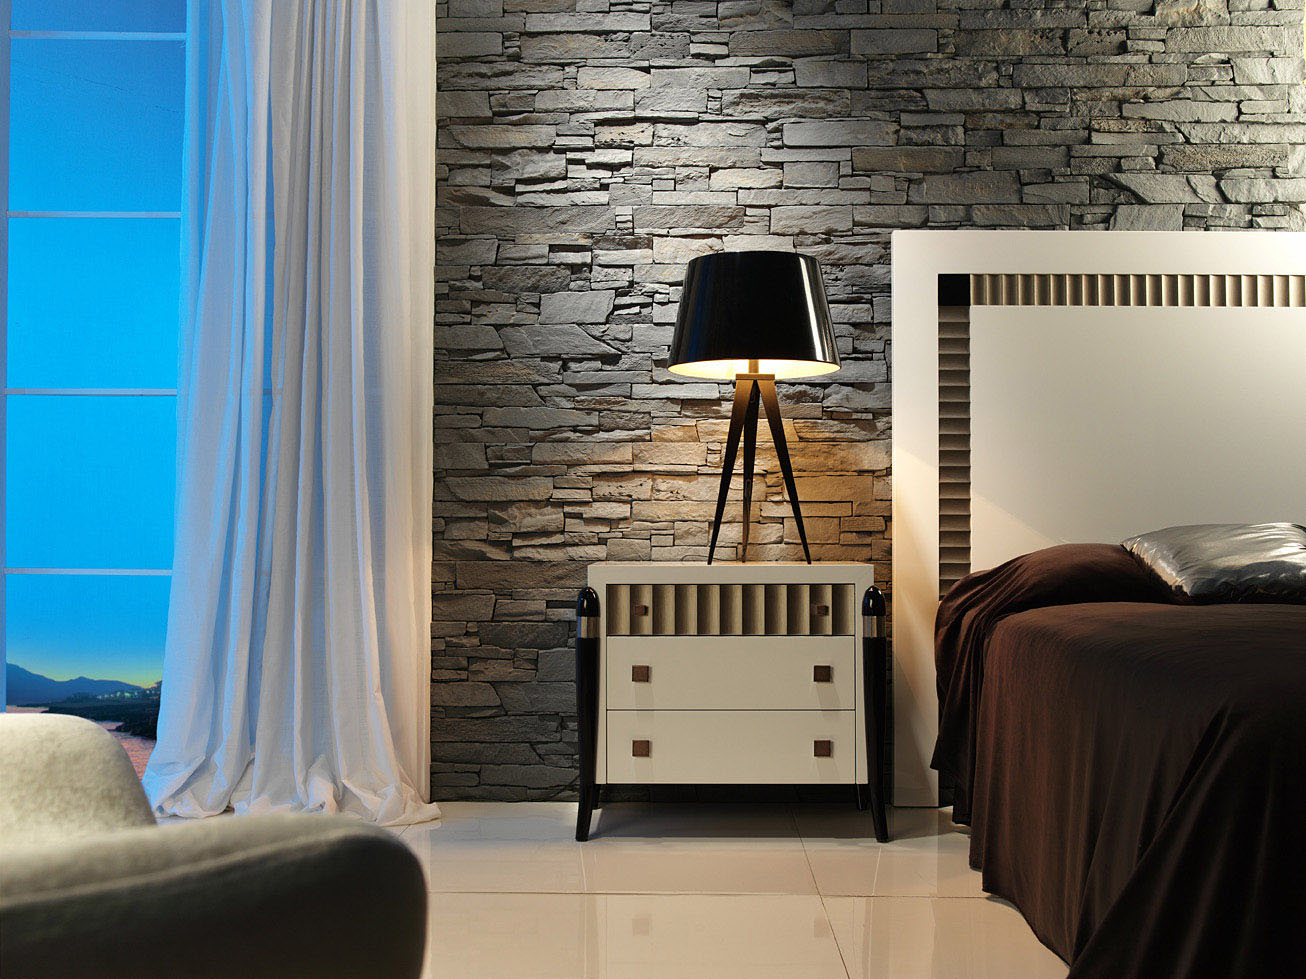 Papeles decorativos y decorative walls - Paneles para paredes interiores ...